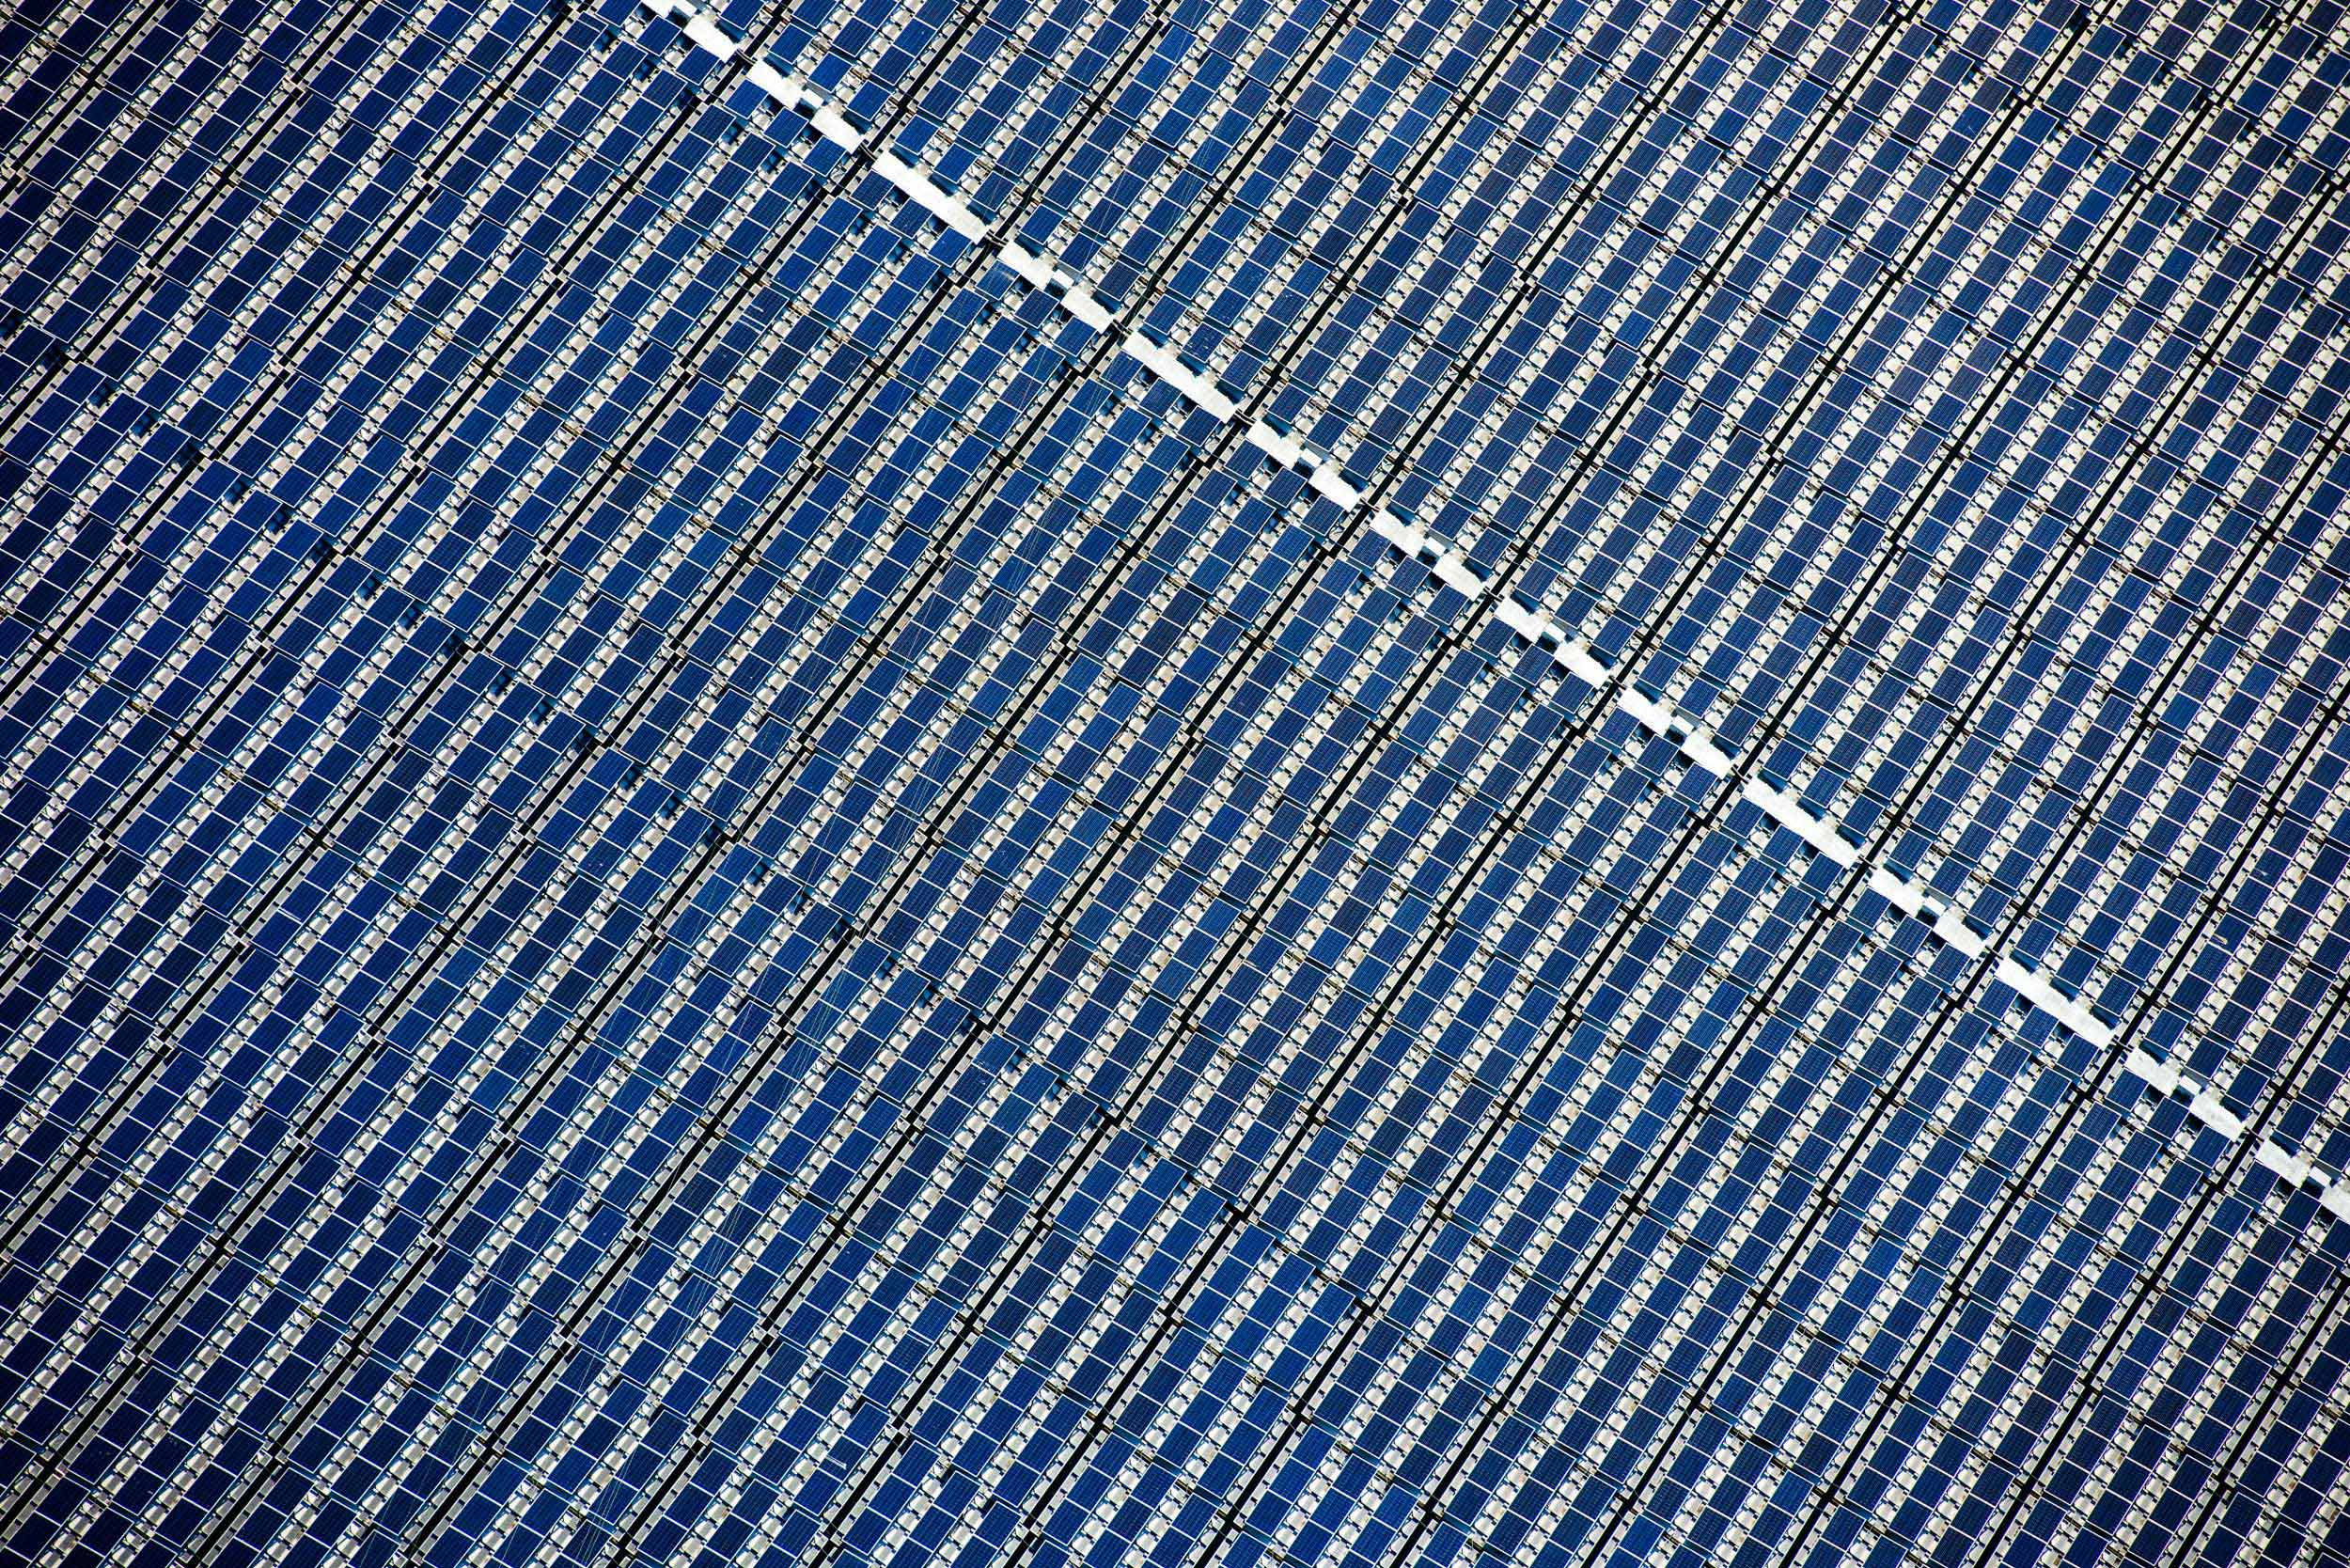 Detail of floating photovoltaic project, Hyogo Prefecture, Japan